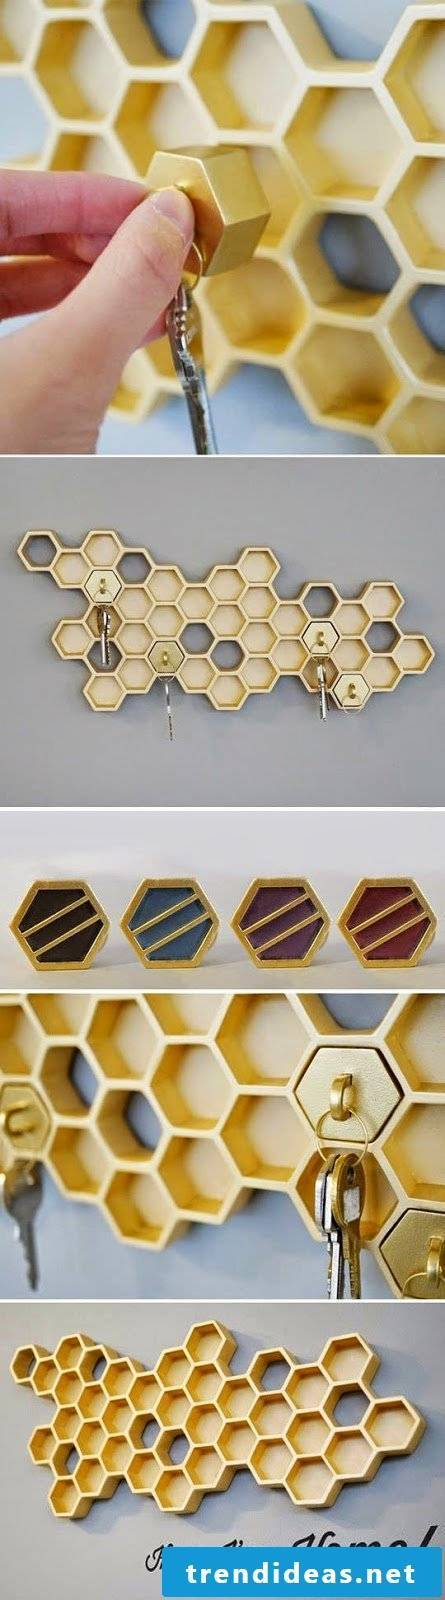 Do it yourself hacks: Key holder: The best storage for your keys!